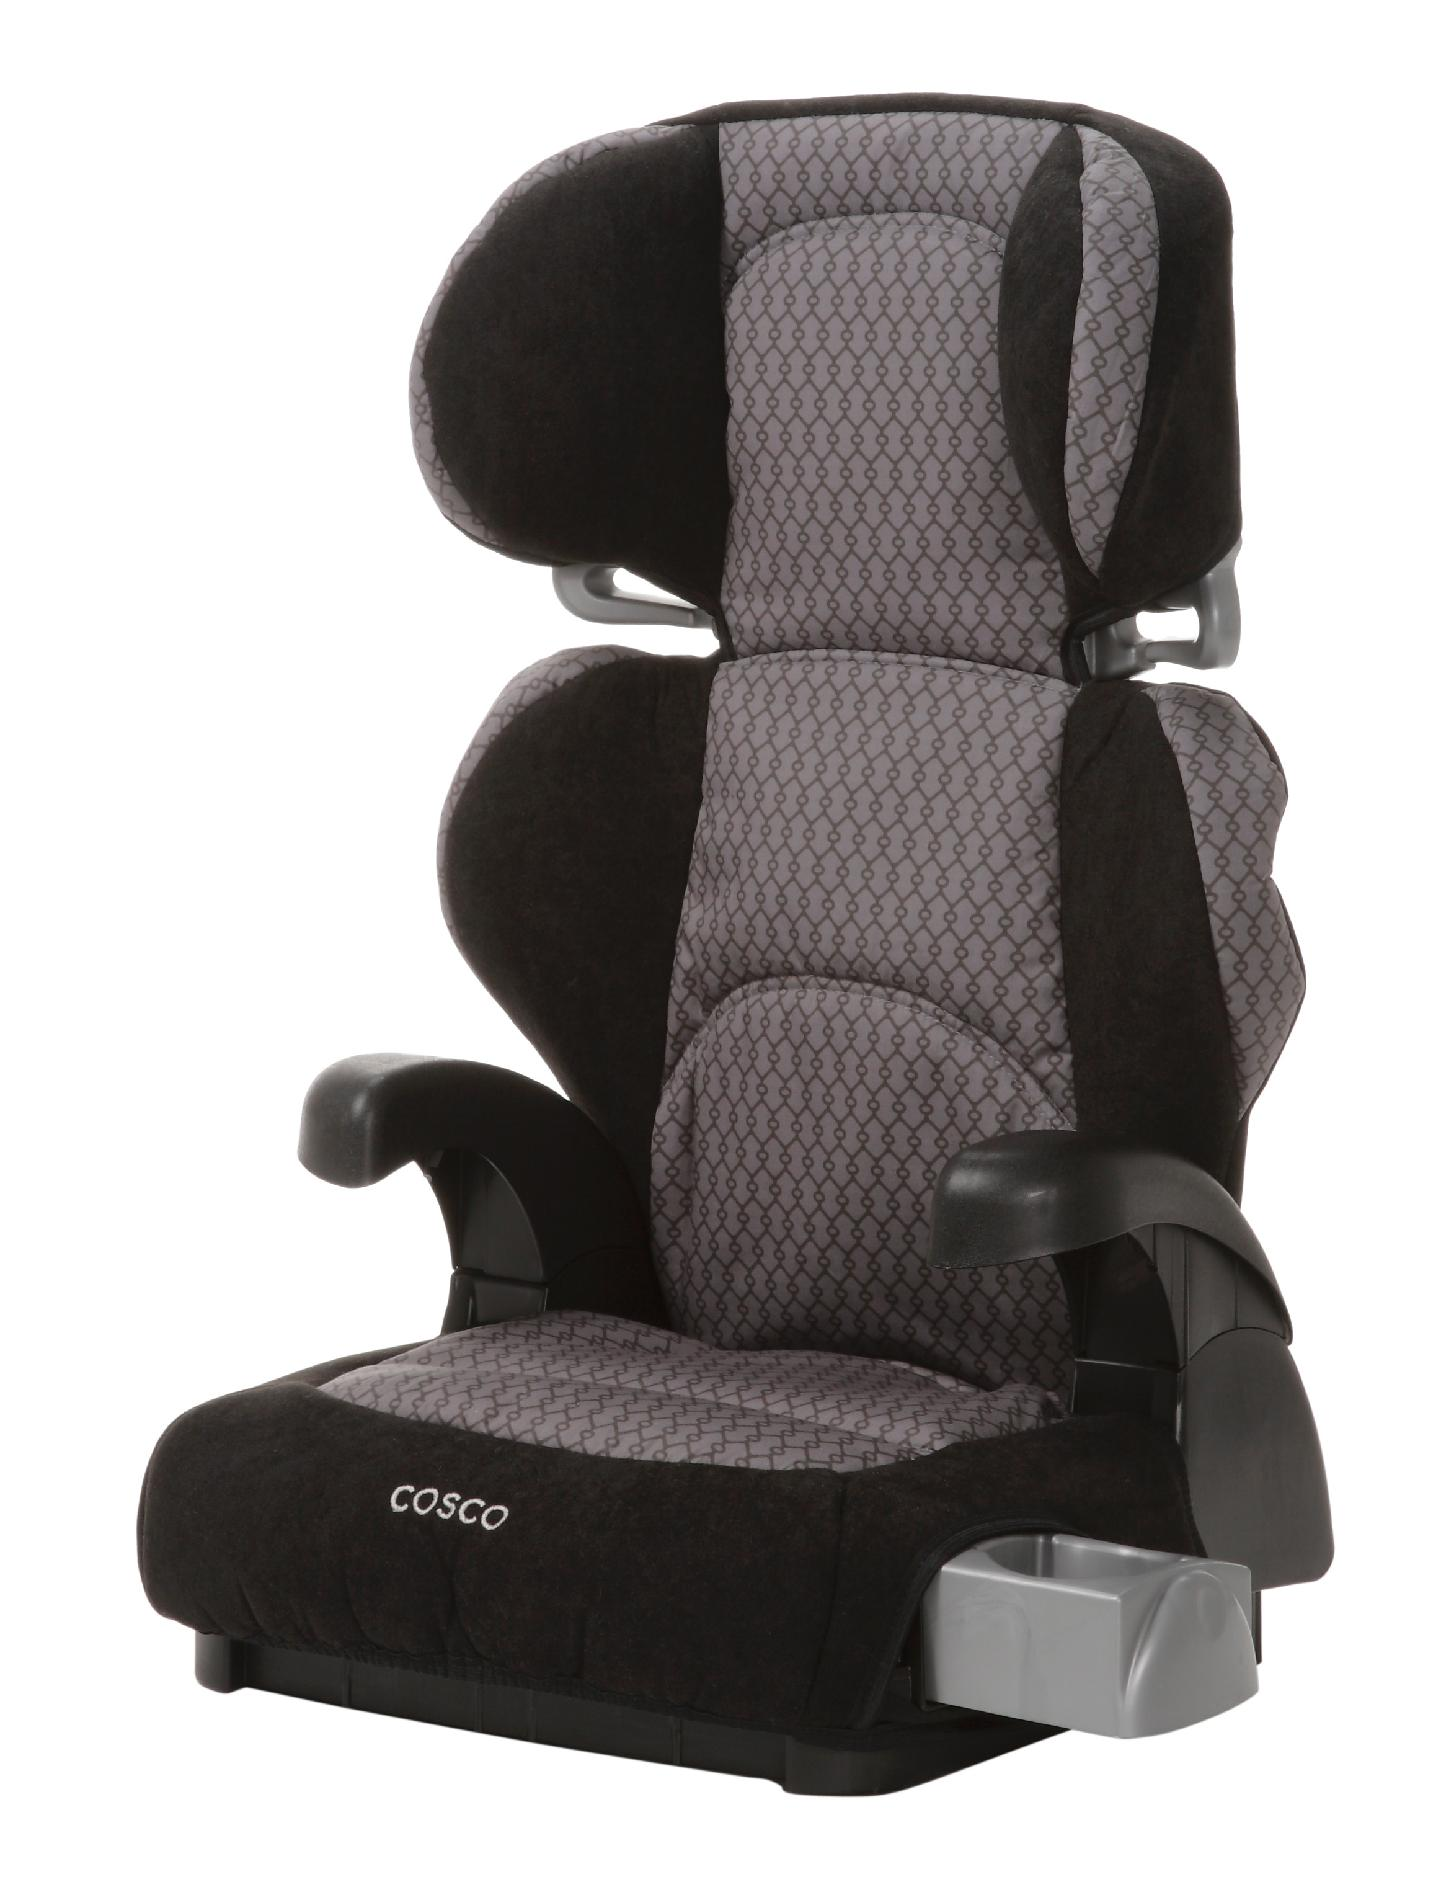 cosco baby chair jungalow hanging pronto booster car seat linked black